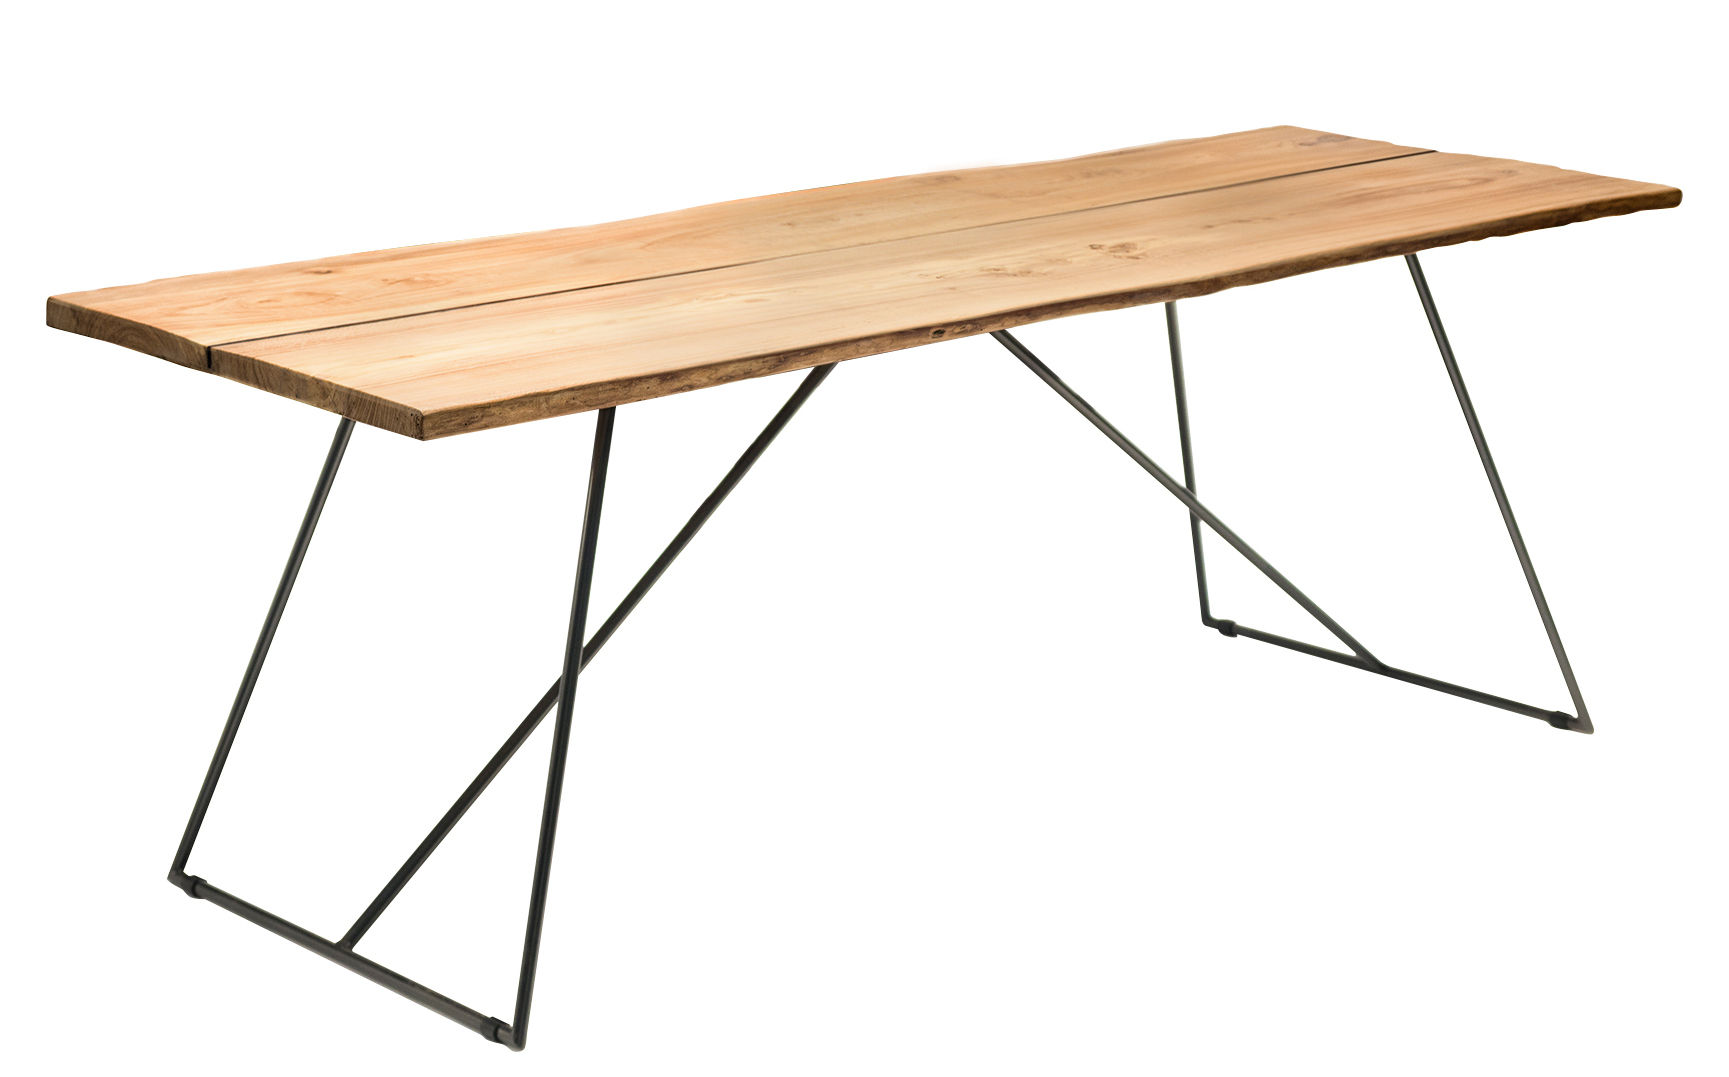 Furniture - Dining Tables - Old Times Rectangular table - / 190 x 70 cm by Zeus - Natural wood / Black base - Painted steel, Solid olive tree